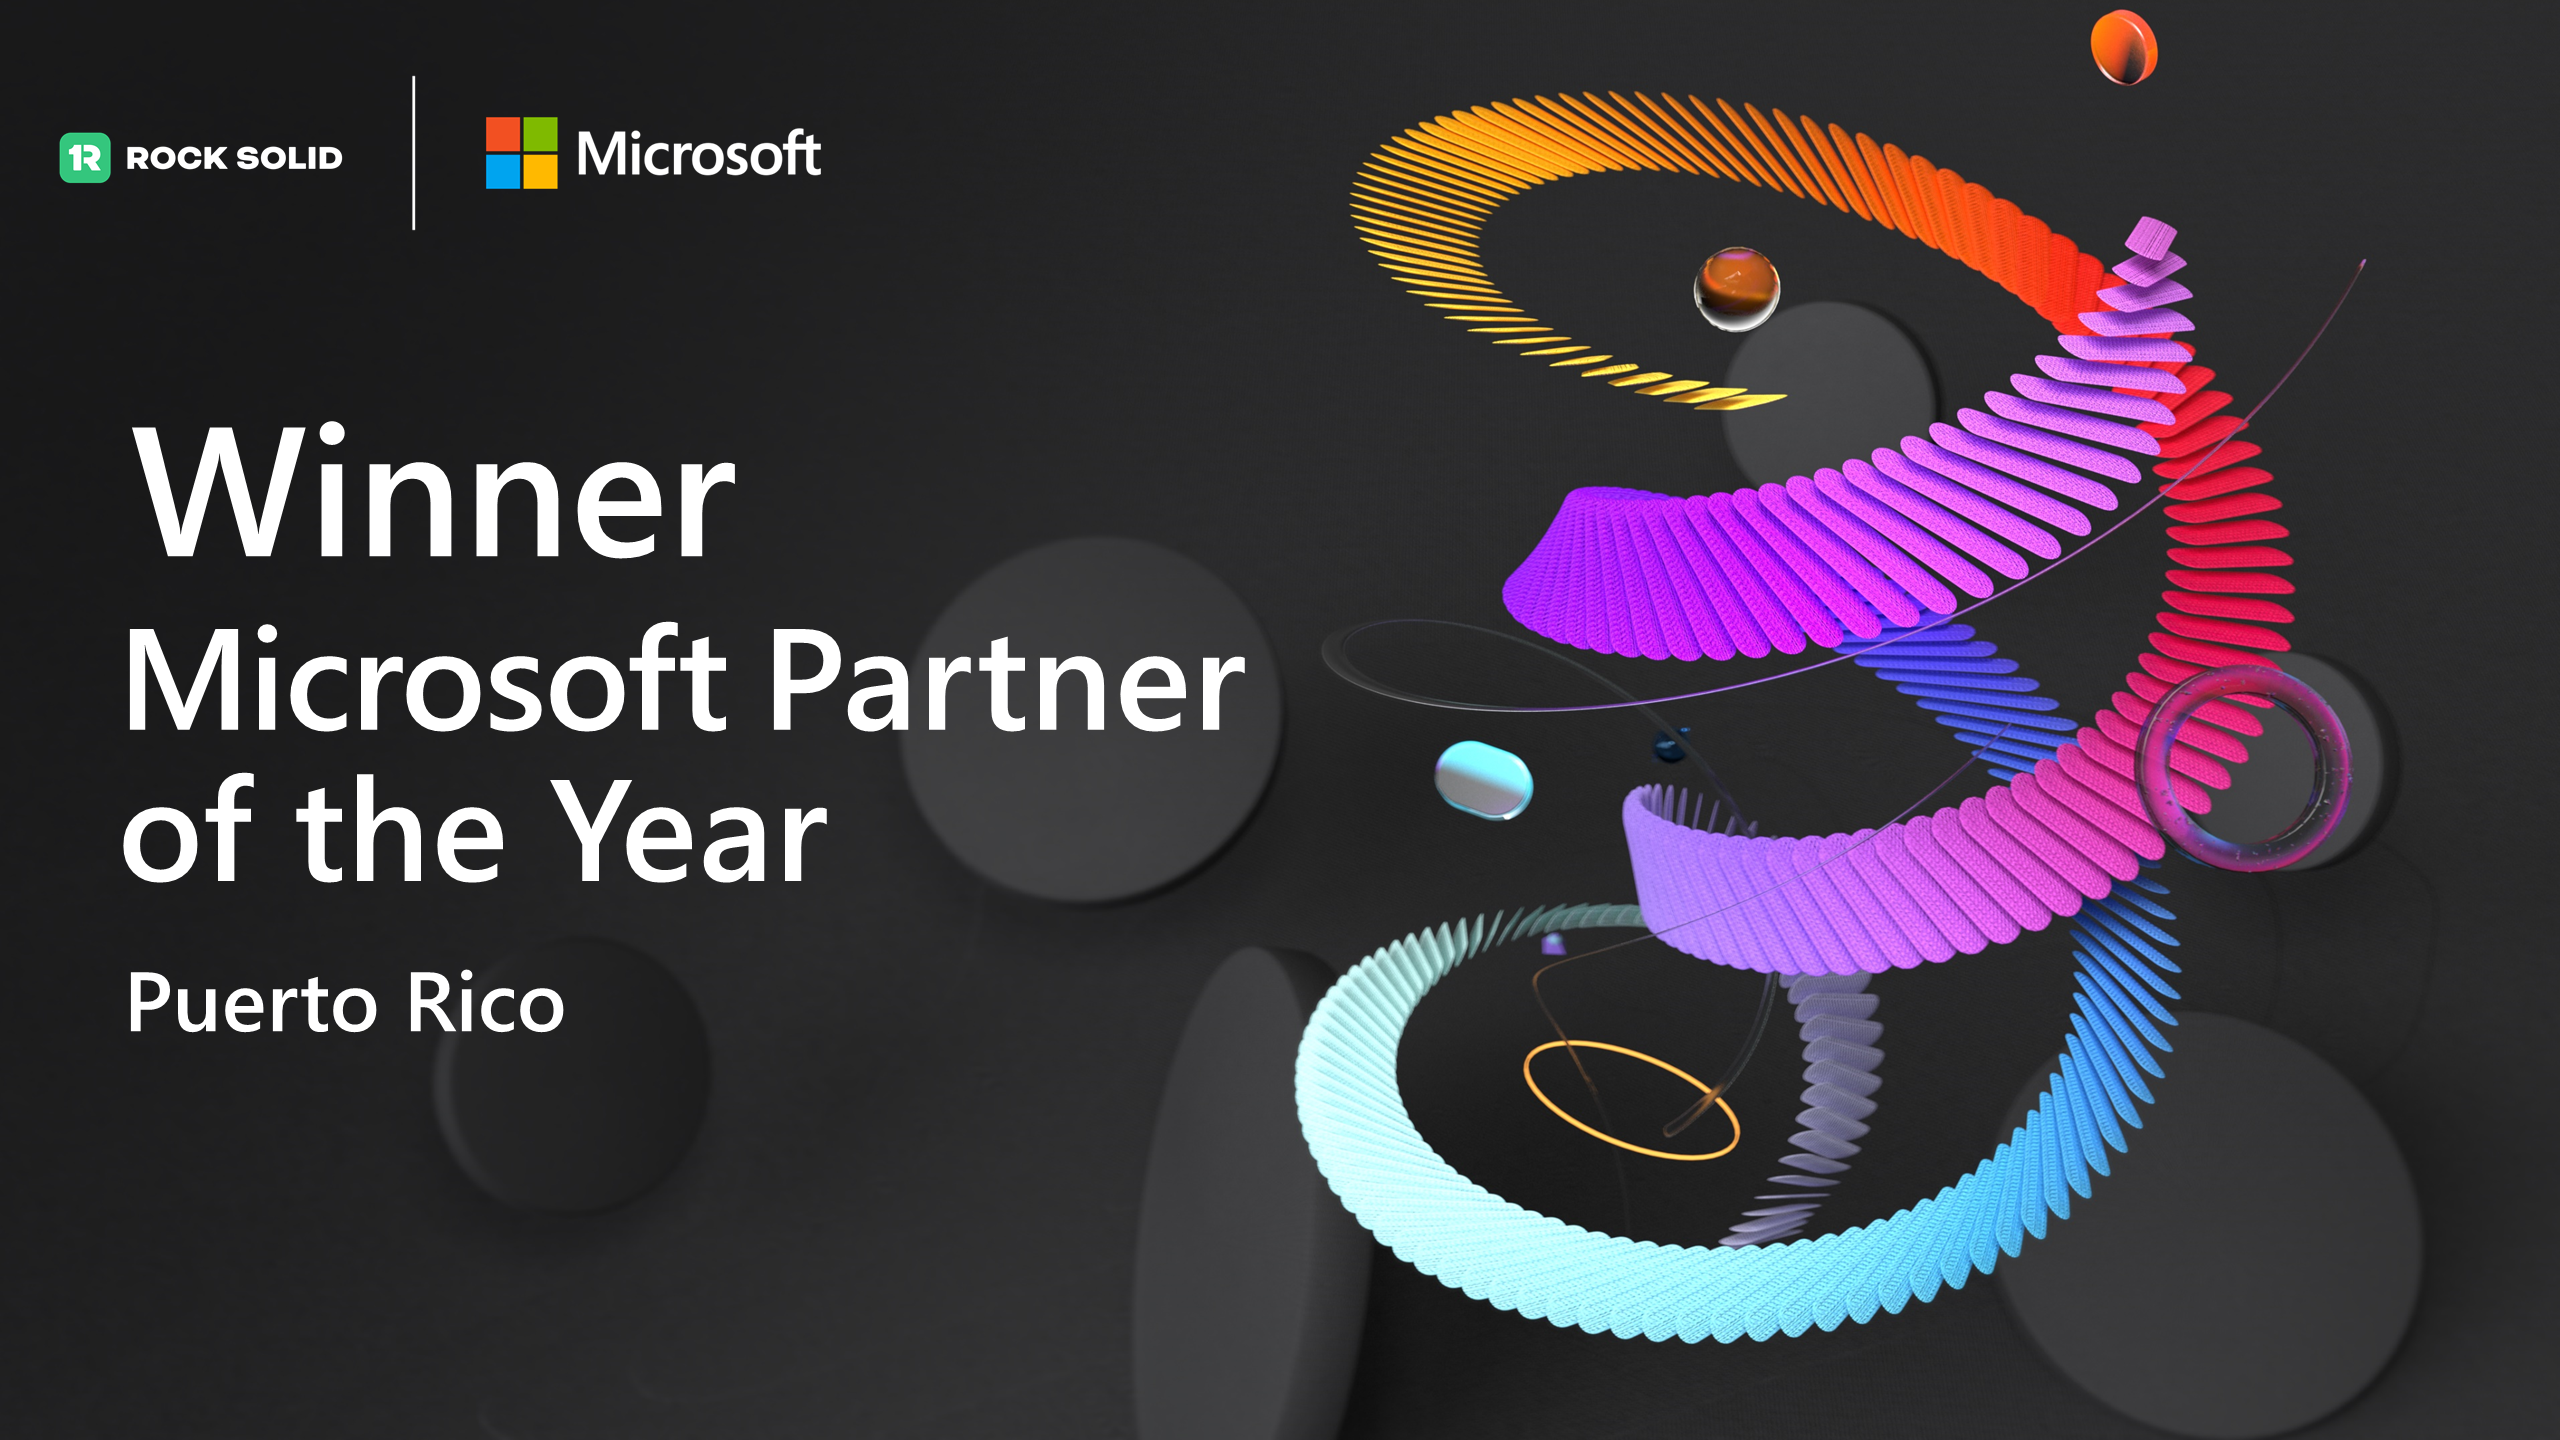 Rock Solid is recognized as the winner of the 2021 Microsoft Puerto Rico Partner of the Year